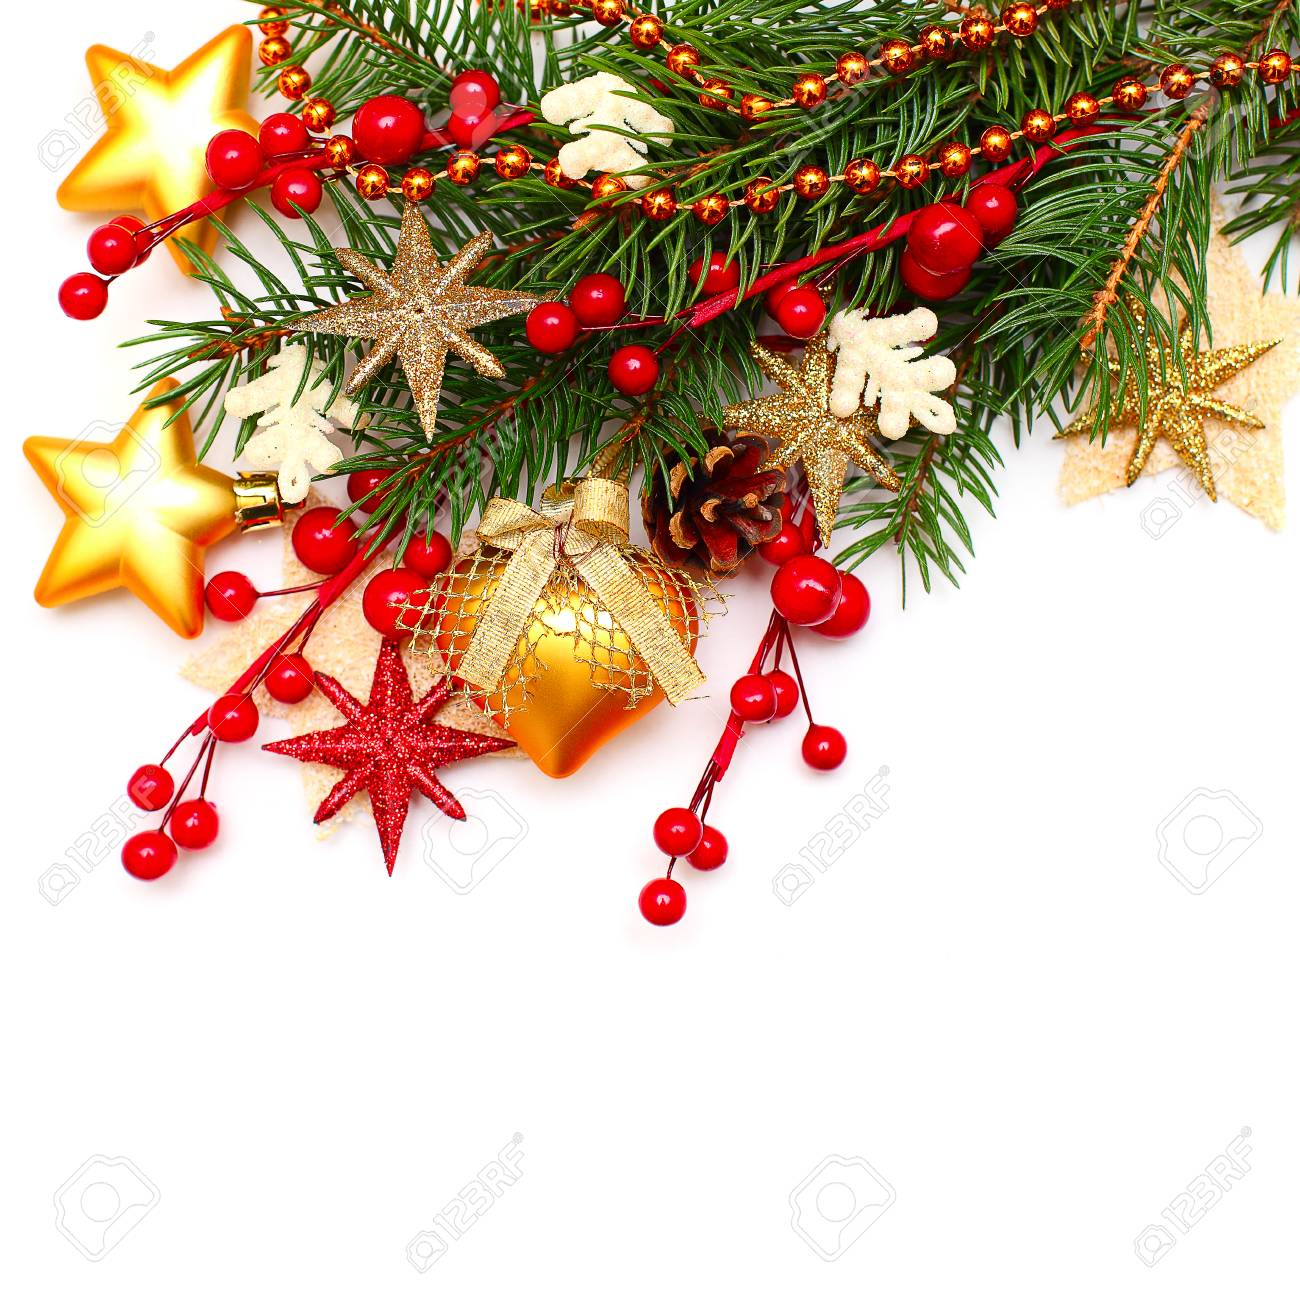 christmas background with glass ball golden stars xmas tree branch and red berry